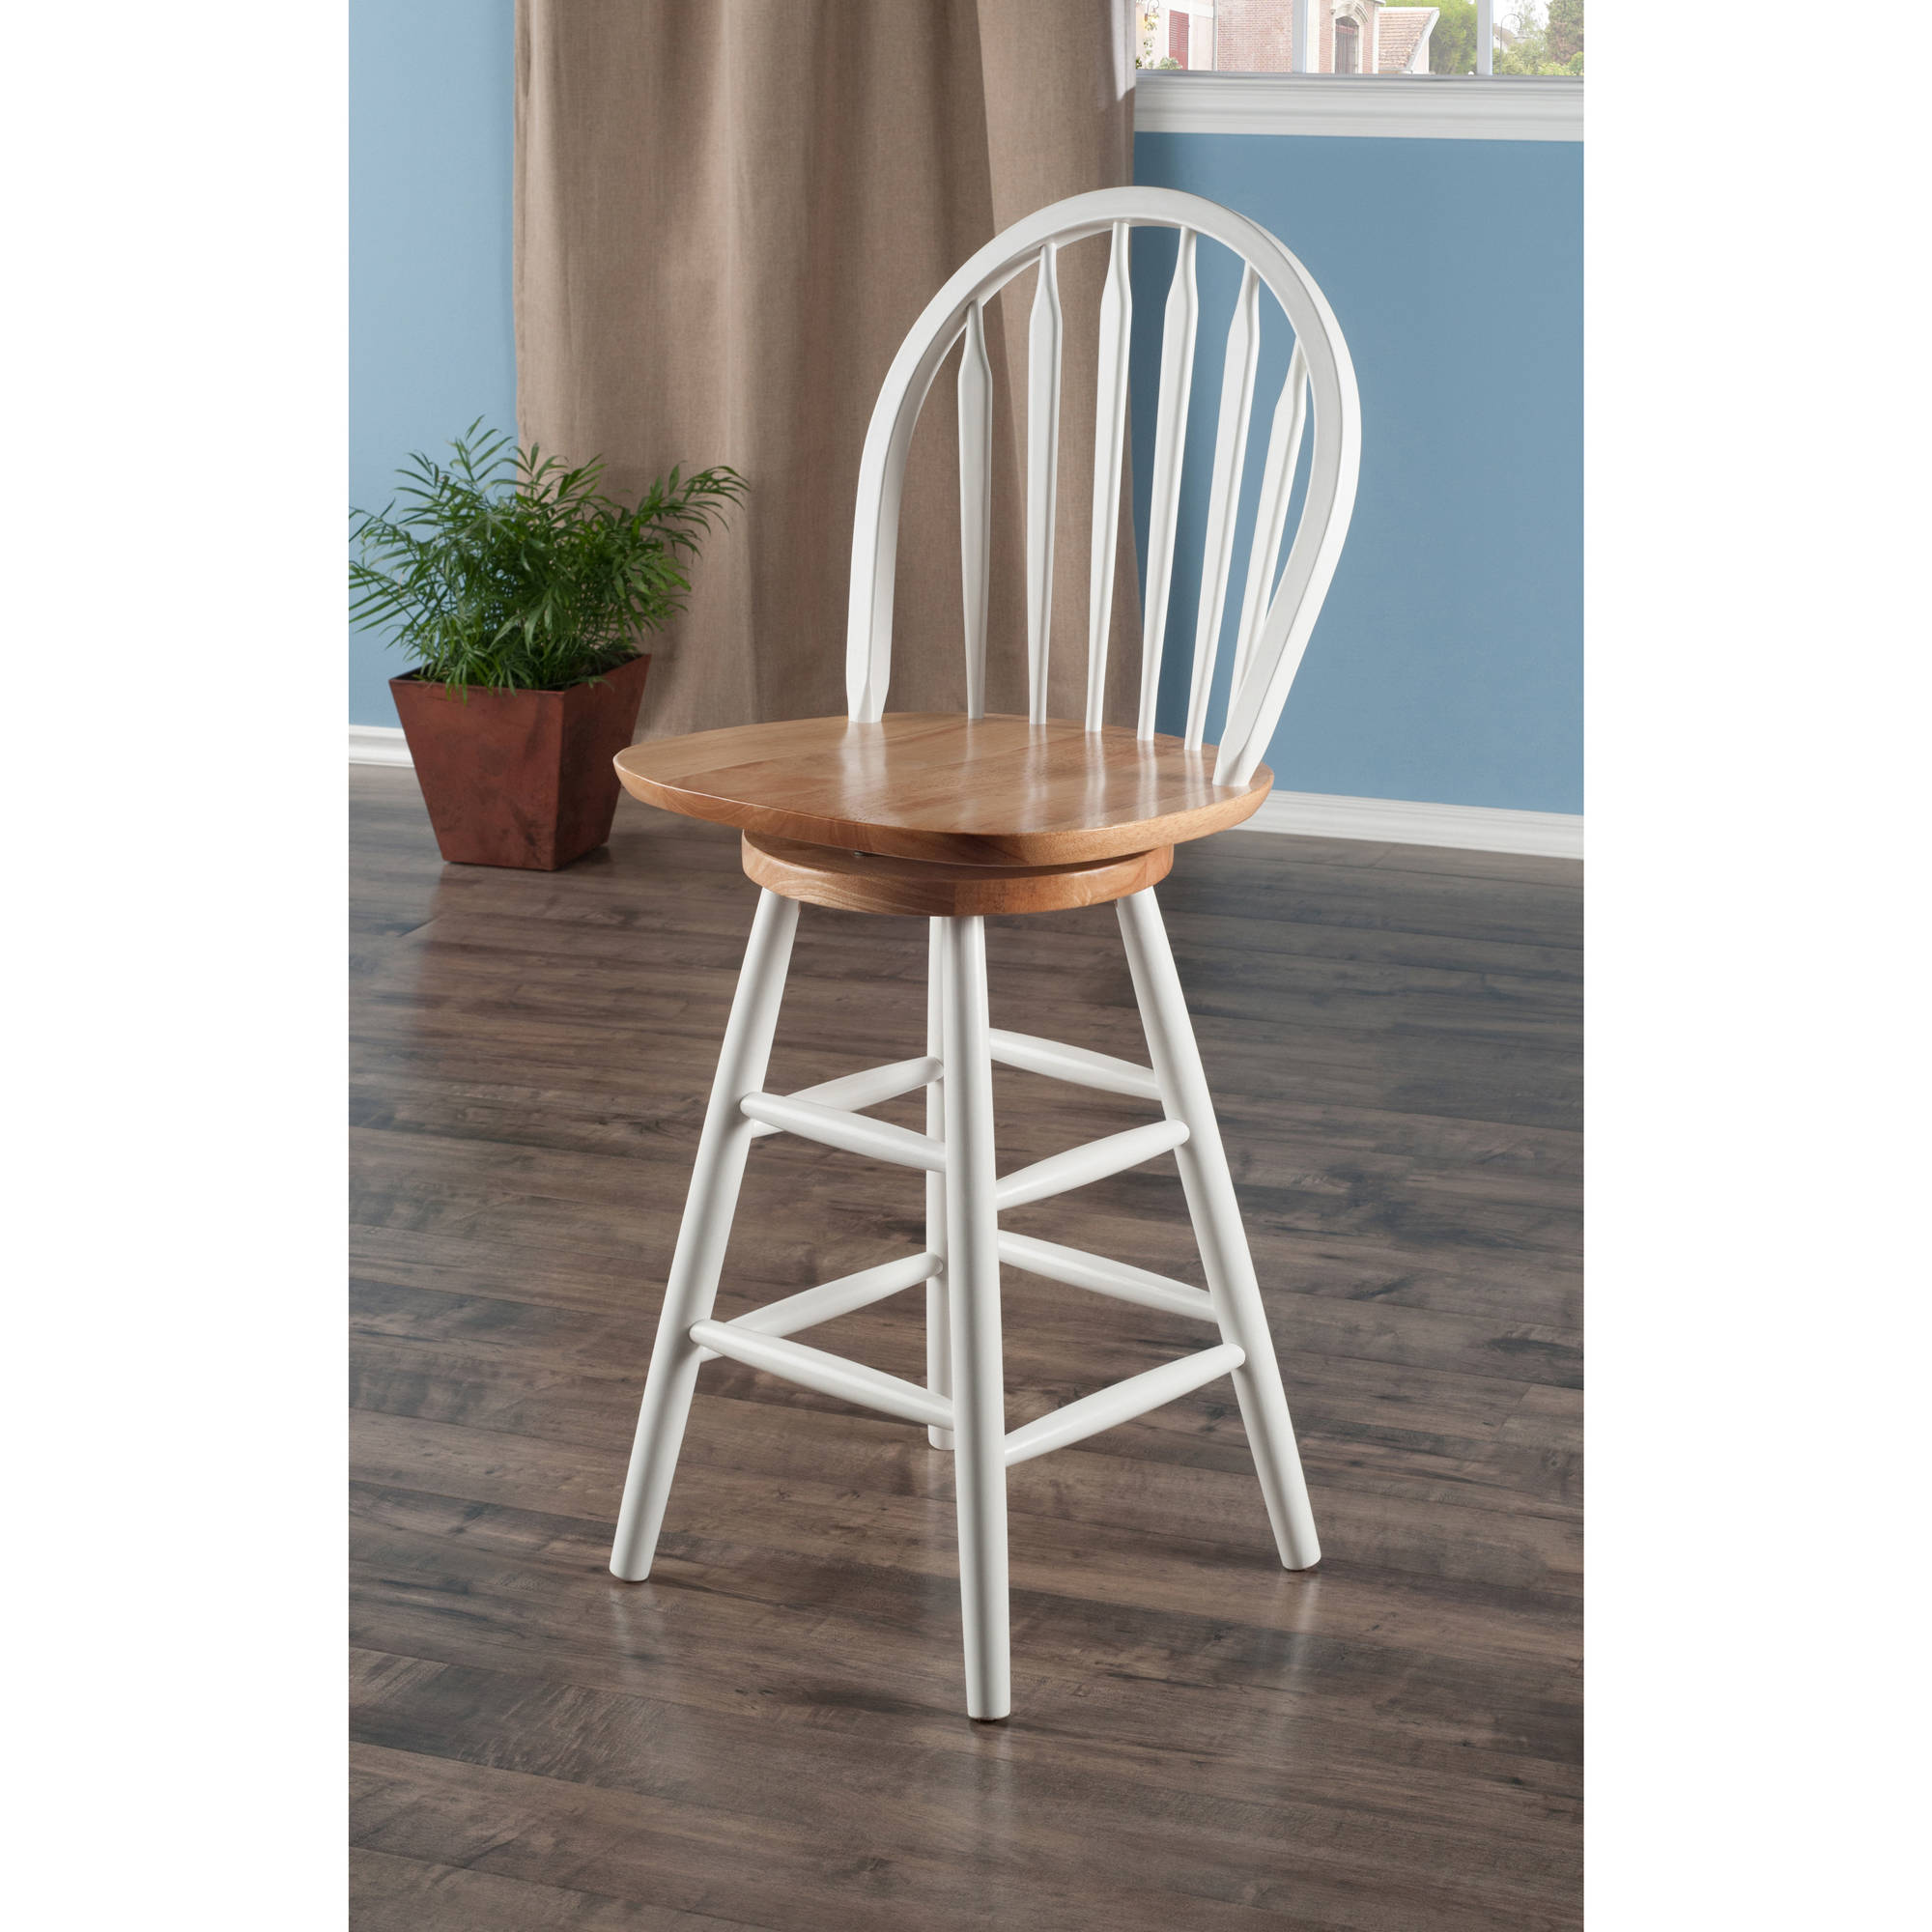 Winsome Wood Wagner 24 Arrowback Windsor Stool Multiple Finish